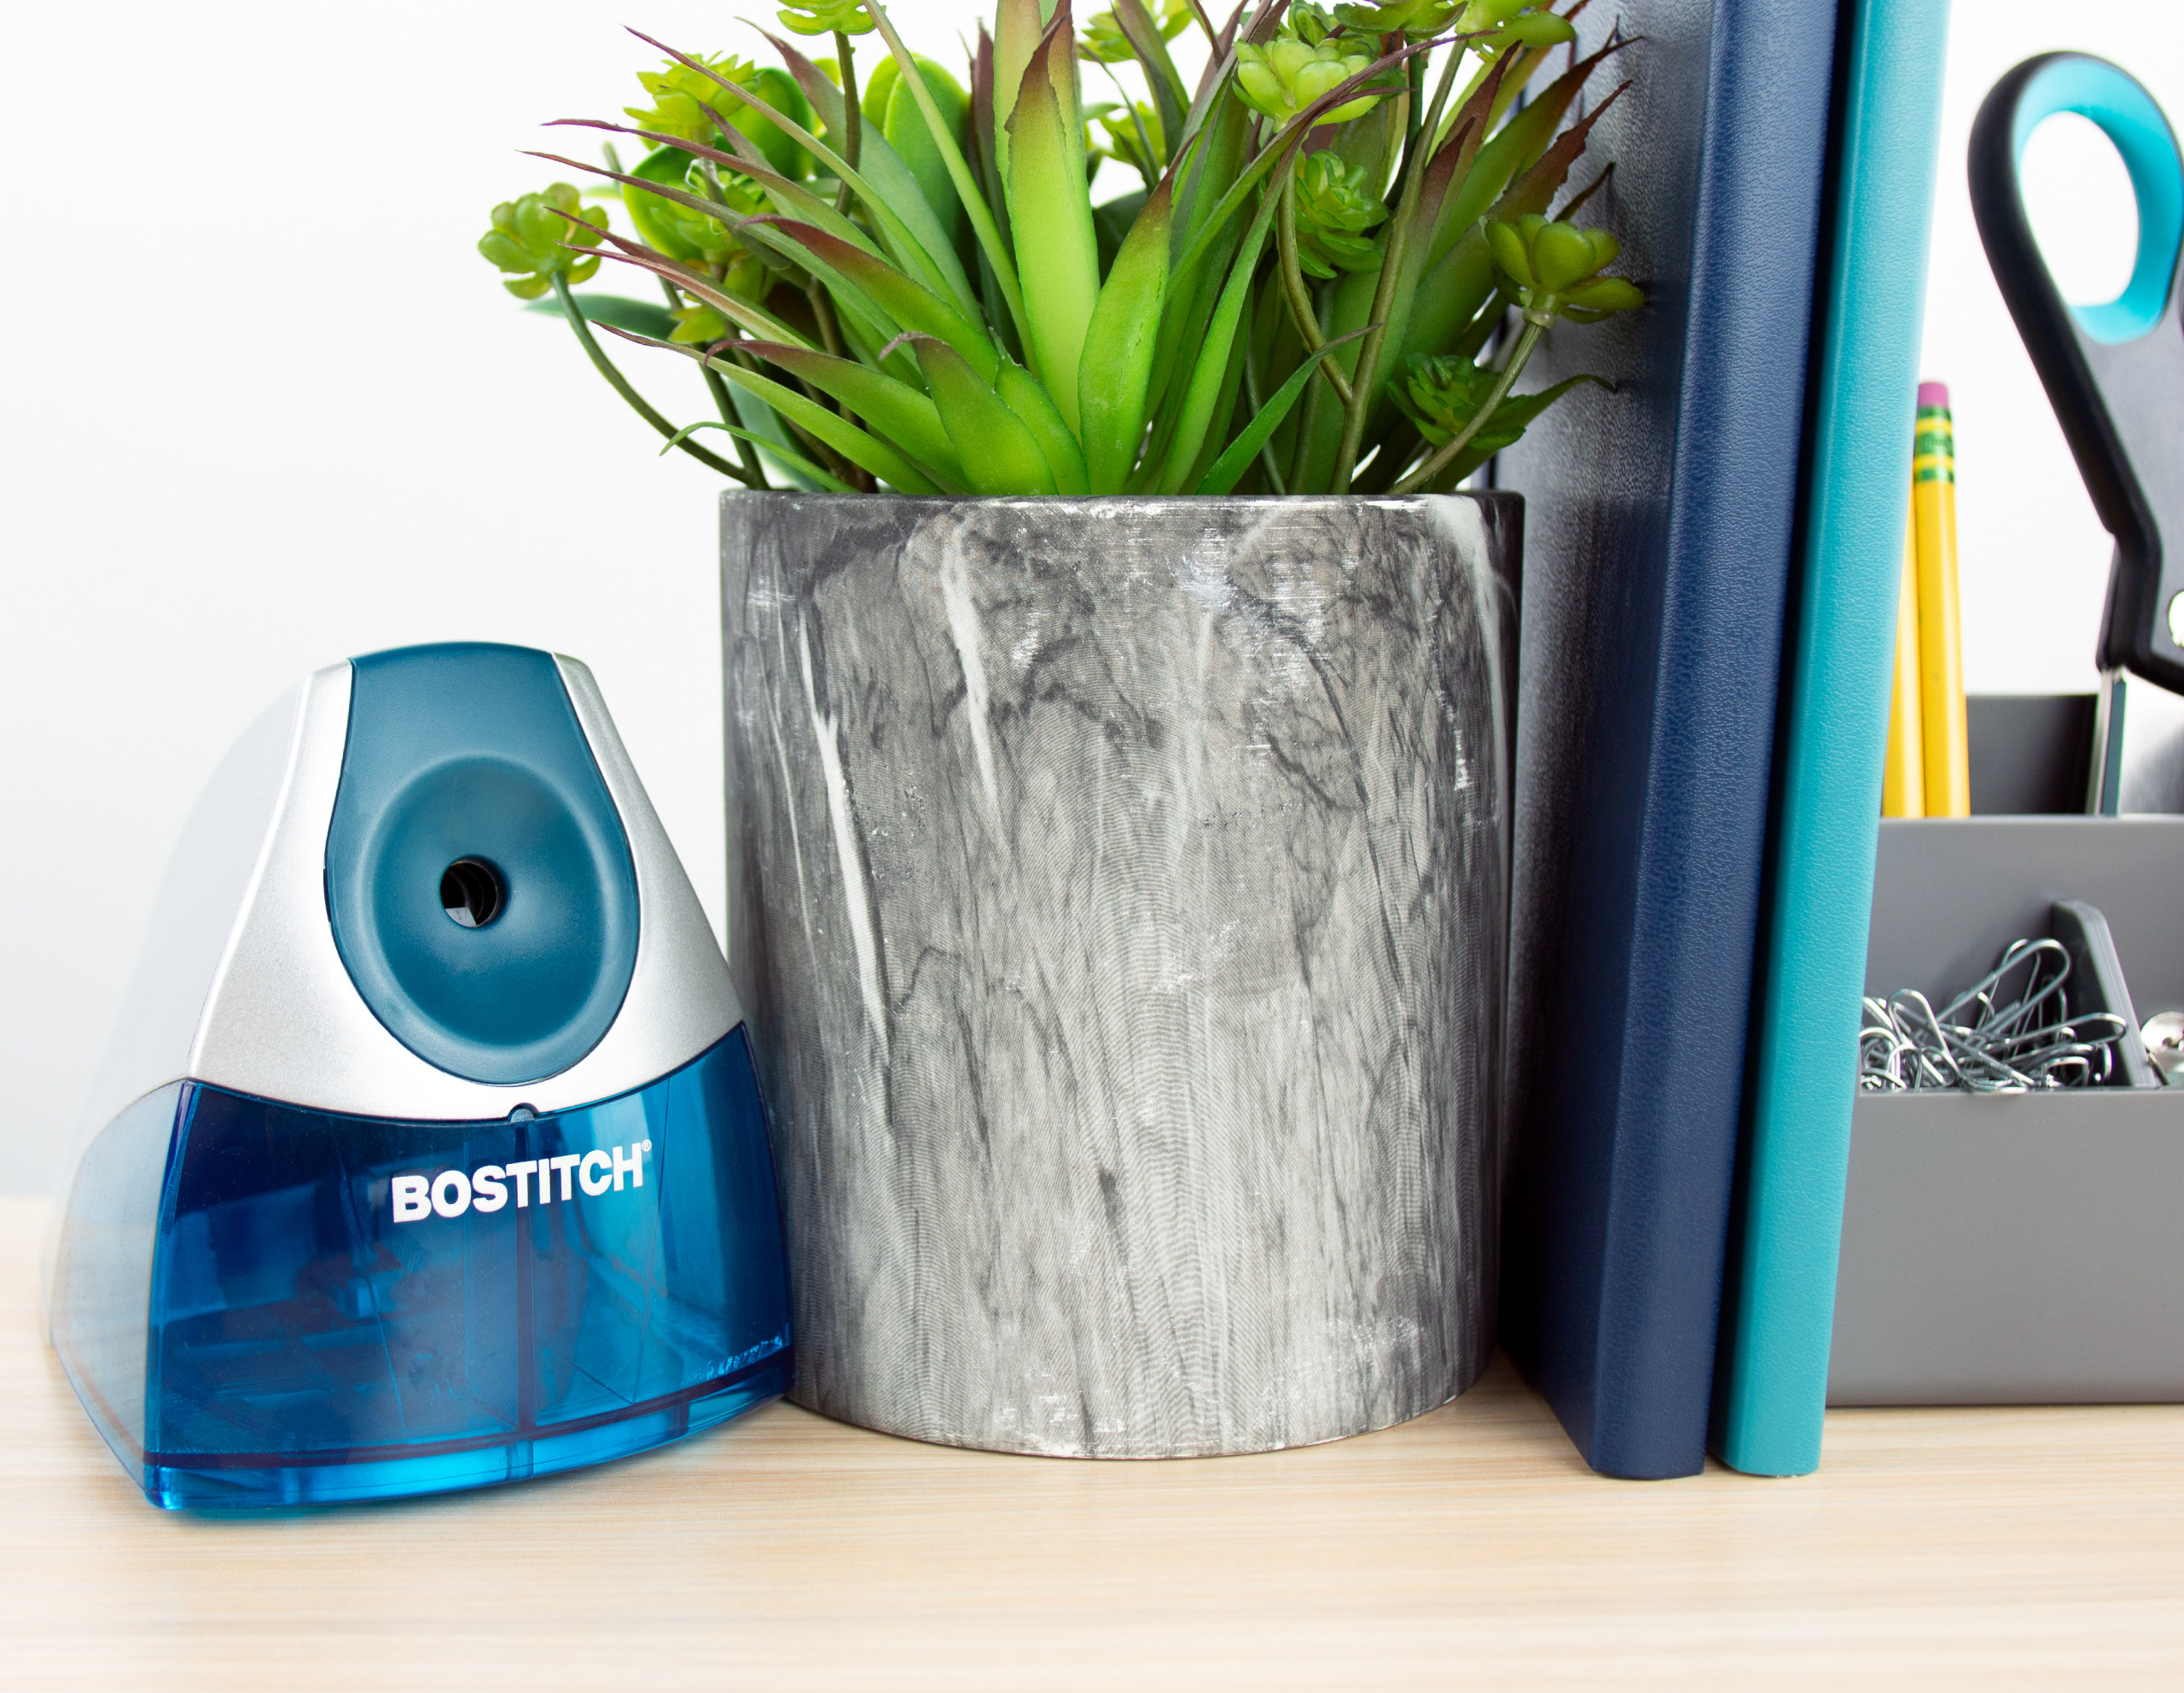 blue Bostitch electric pencil sharpener sitting on a desk next to a plant